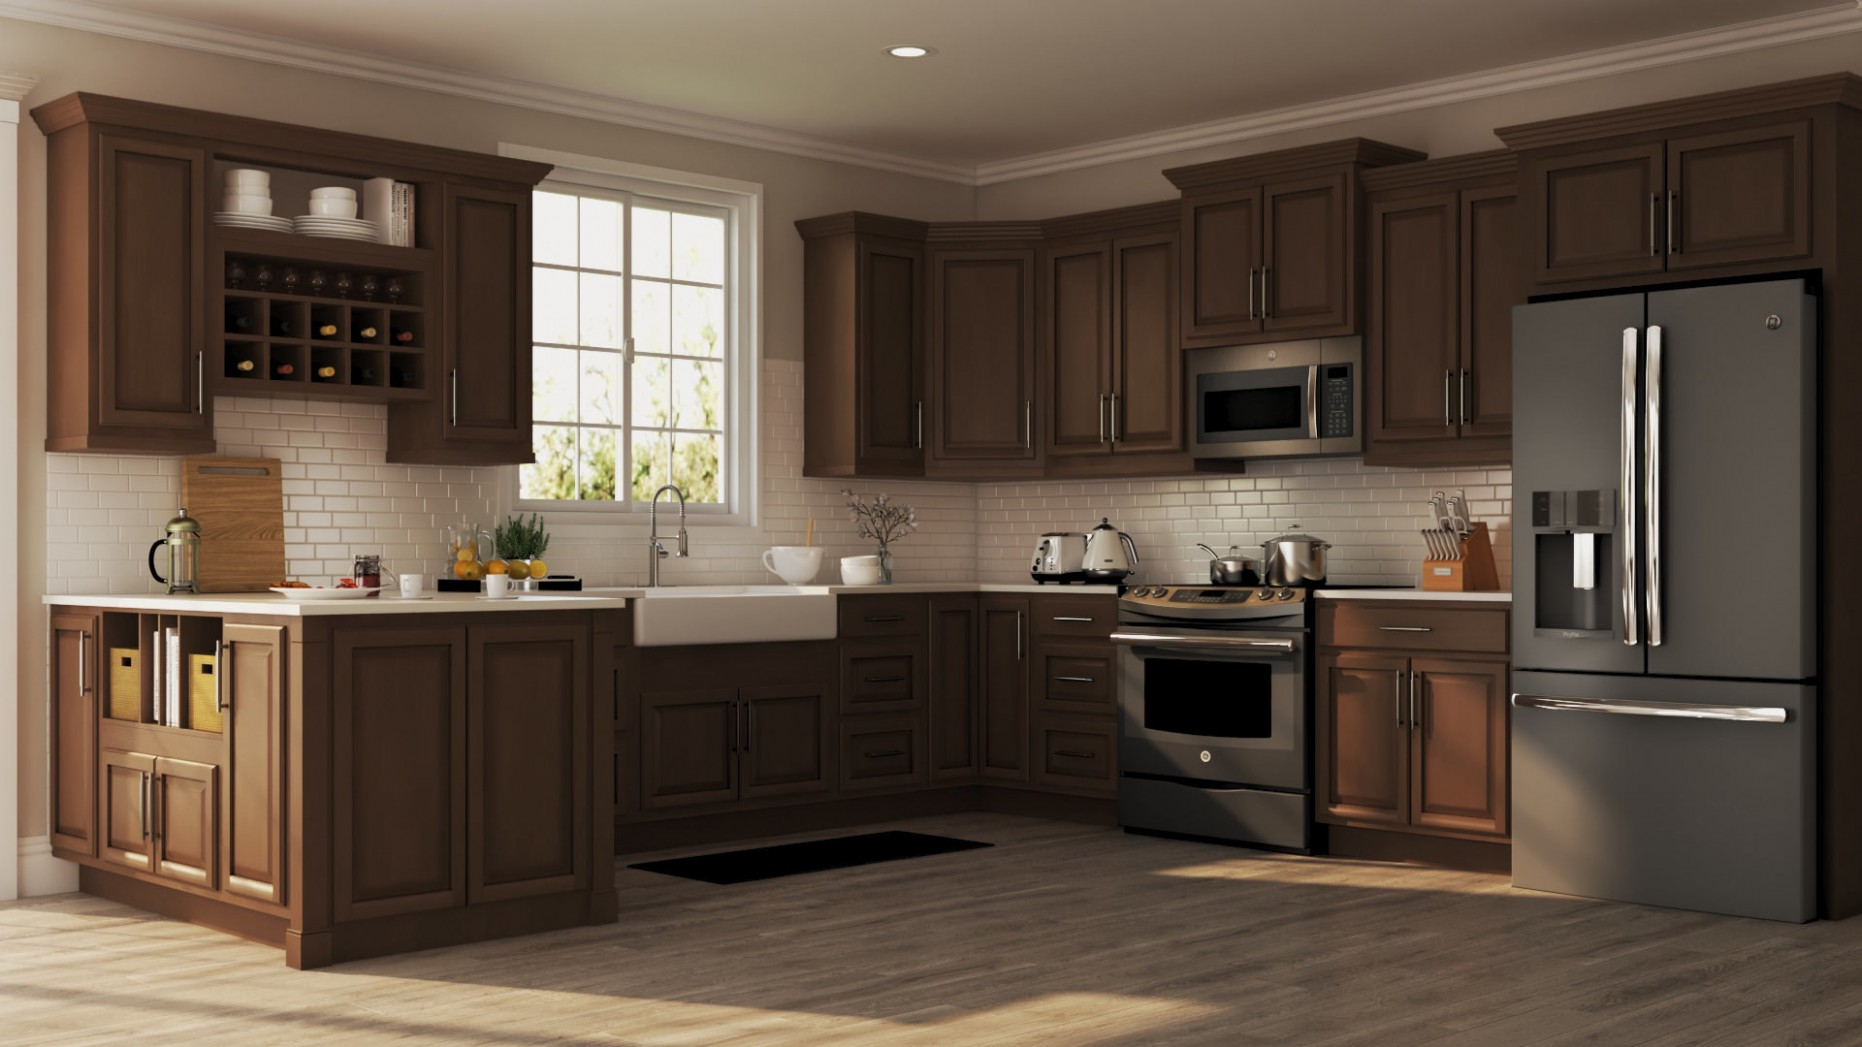 Hampton Wall Kitchen Cabinets in Cognac – Kitchen – The Home  - Buy Kitchen Wall Cabinets Online